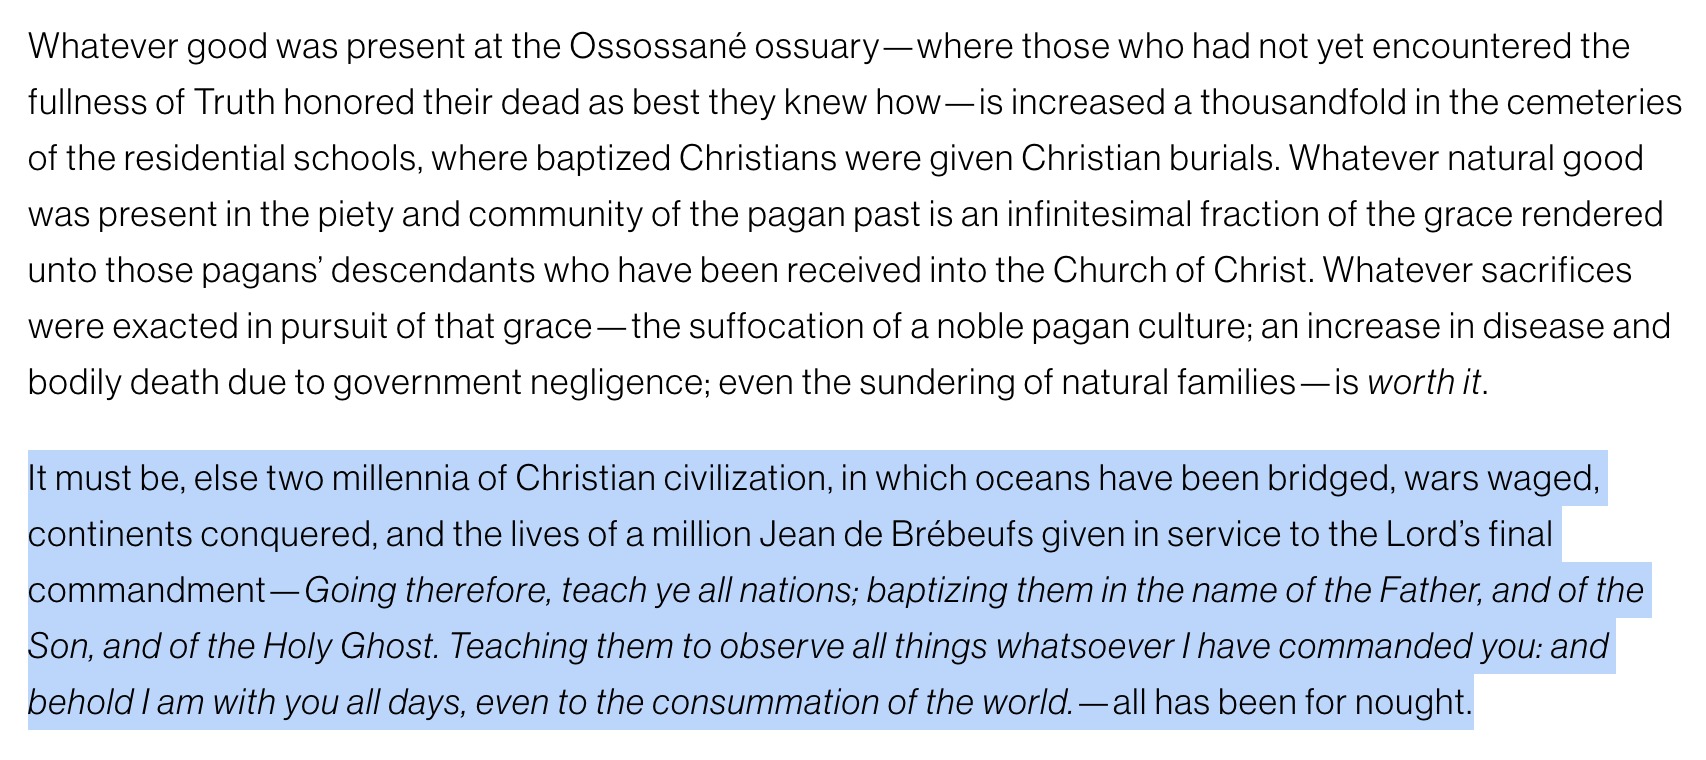 """Screenshot of American Conservative article on Canadian Residential schools. Text reads: """"Whatever good was present at the Ossossané ossuary—where those who had not yet encountered the fullness of Truth honored their dead as best they knew how—is increased a thousandfold in the cemeteries of the residential schools, where baptized Christians were given Christian burials. Whatever natural good was present in the piety and community of the pagan past is an infinitesimal fraction of the grace rendered unto those pagans' descendants who have been received into the Church of Christ. Whatever sacrifices were exacted in pursuit of that grace—the suffocation of a noble pagan culture; an increase in disease and bodily death due to government negligence; even the sundering of natural families—is worth it. It must be, else two millennia of Christian civilization, in which oceans have been bridged, wars waged, continents conquered, and the lives of a million Jean de Brébeufs given in service to the Lord's final commandment—Going therefore, teach ye all nations; baptizing them in the name of the Father, and of the Son, and of the Holy Ghost. Teaching them to observe all things whatsoever I have commanded you: and behold I am with you all days, even to the consummation of the world.—all has been for nought."""""""